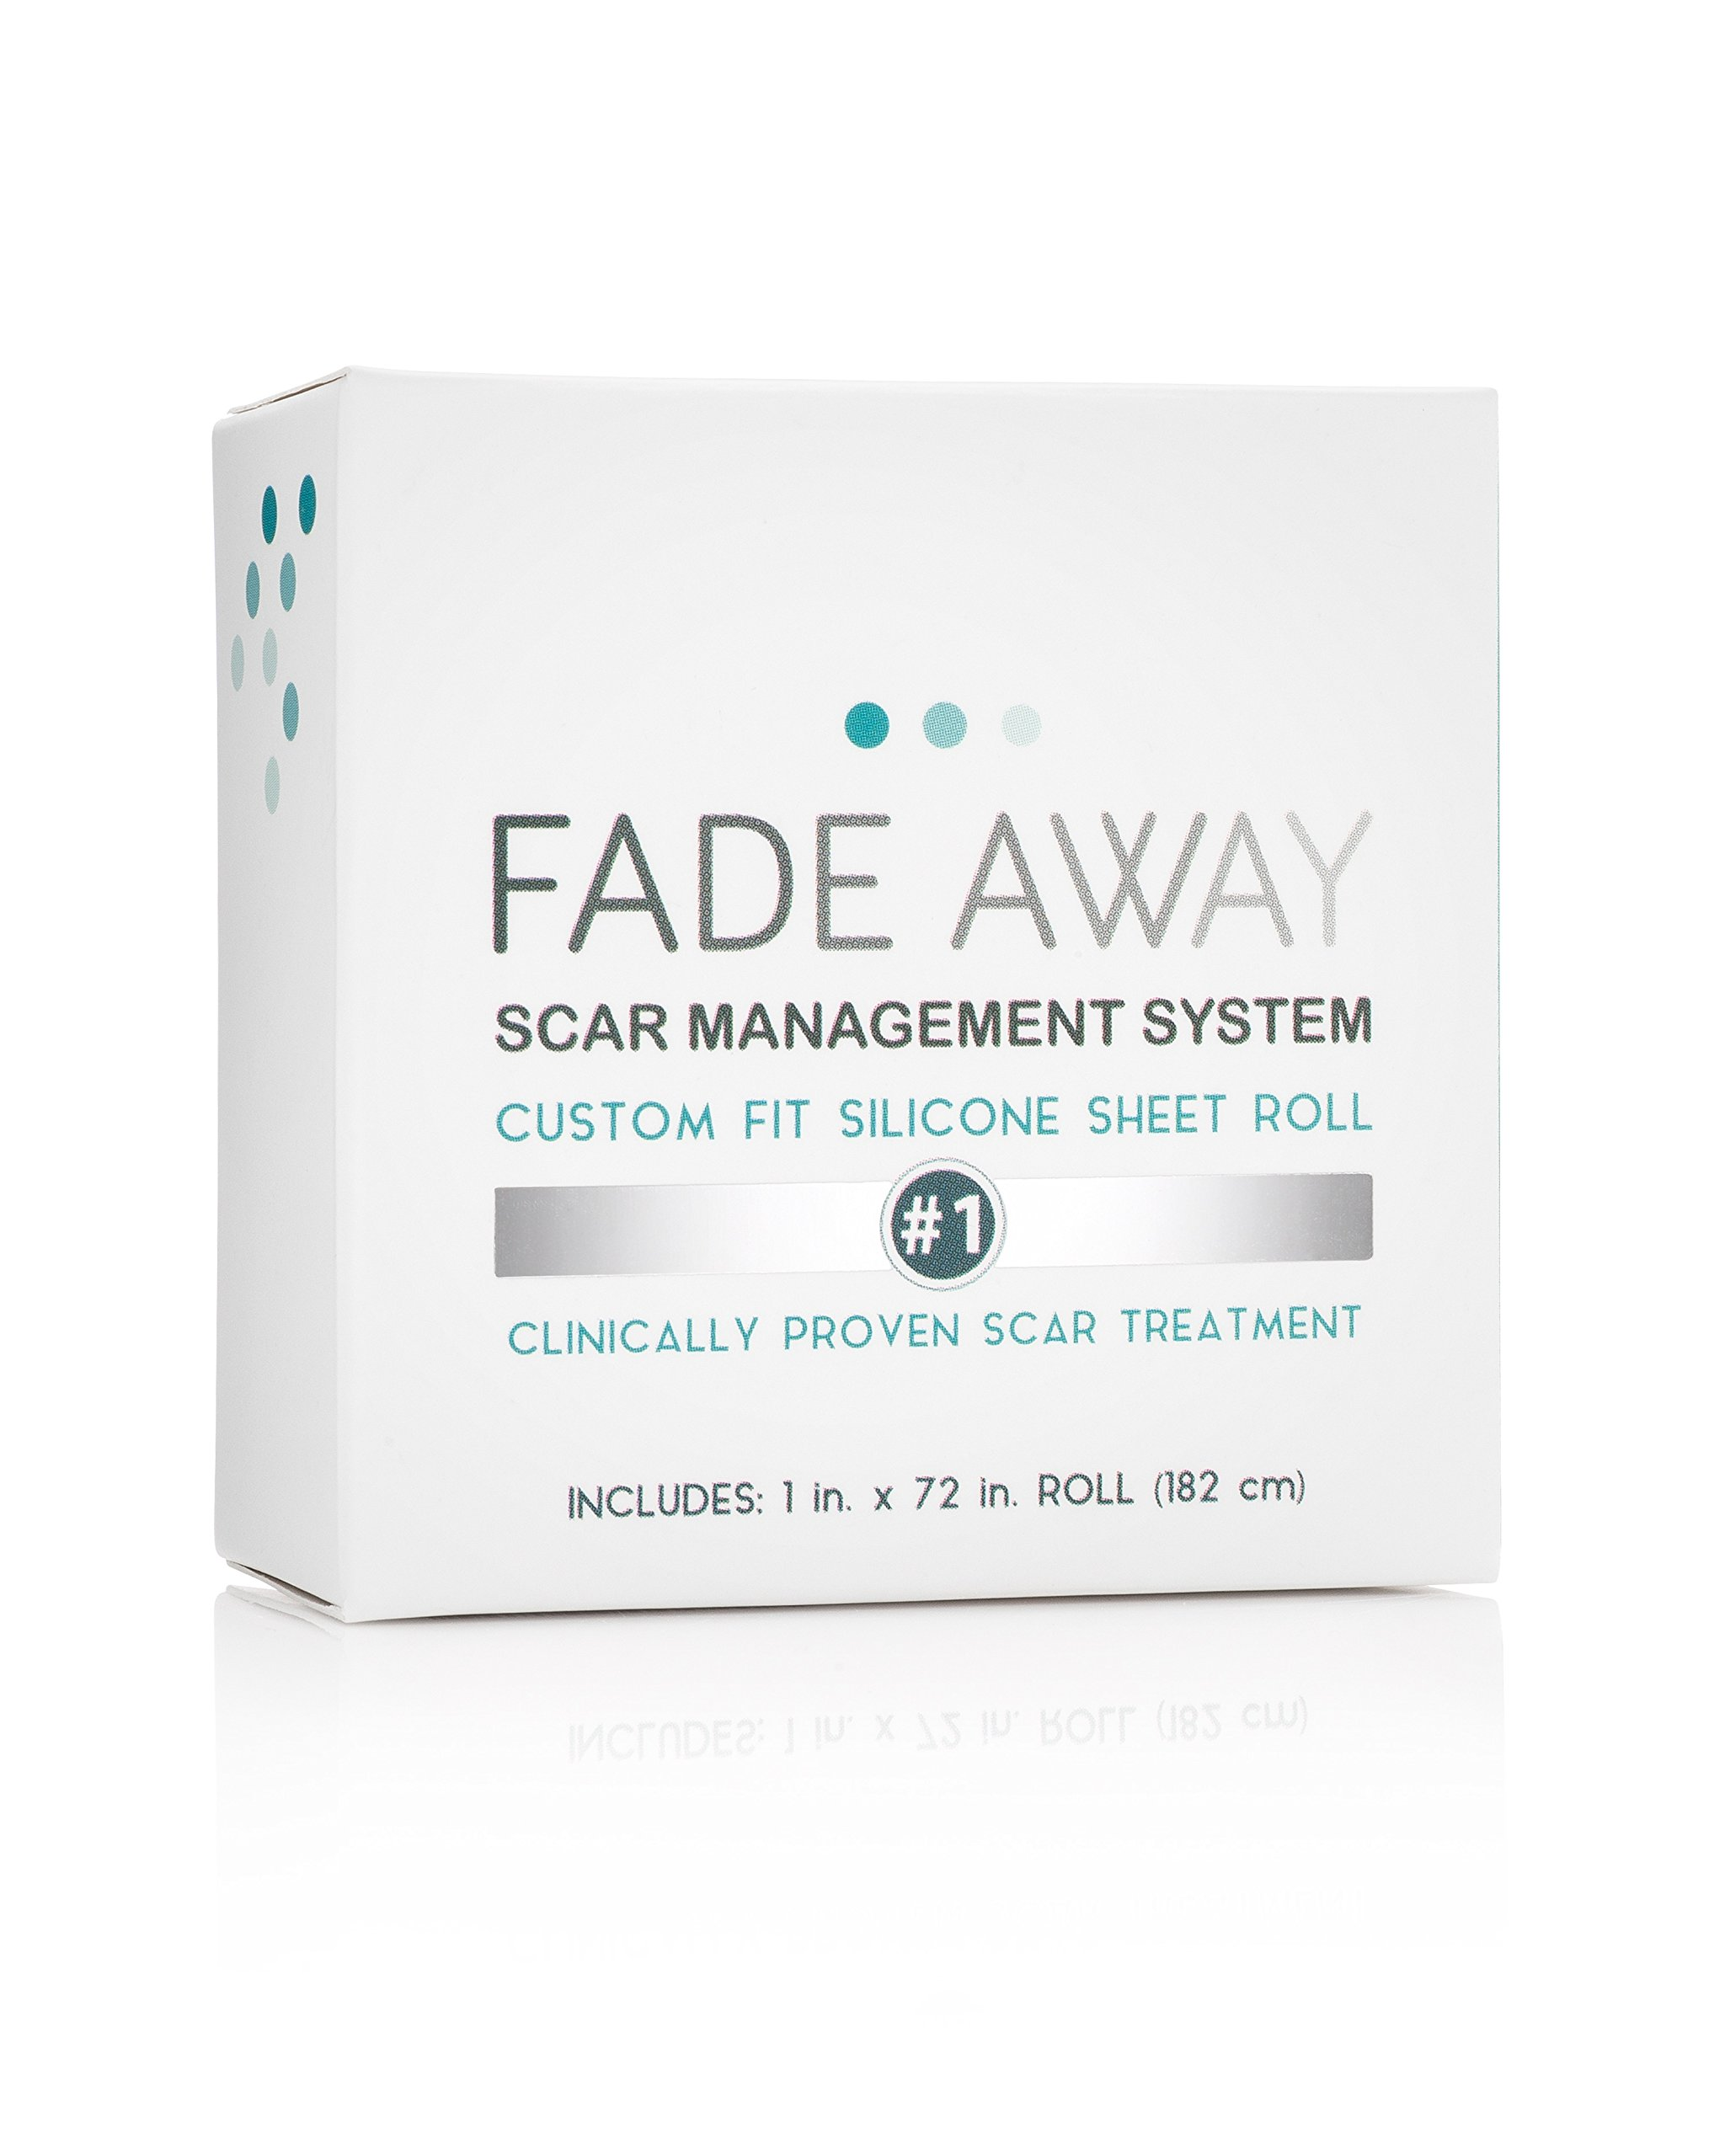 Fade Away Silicone Gel Scar Treatment Sheets - 6ft Trim-to-Size Roll